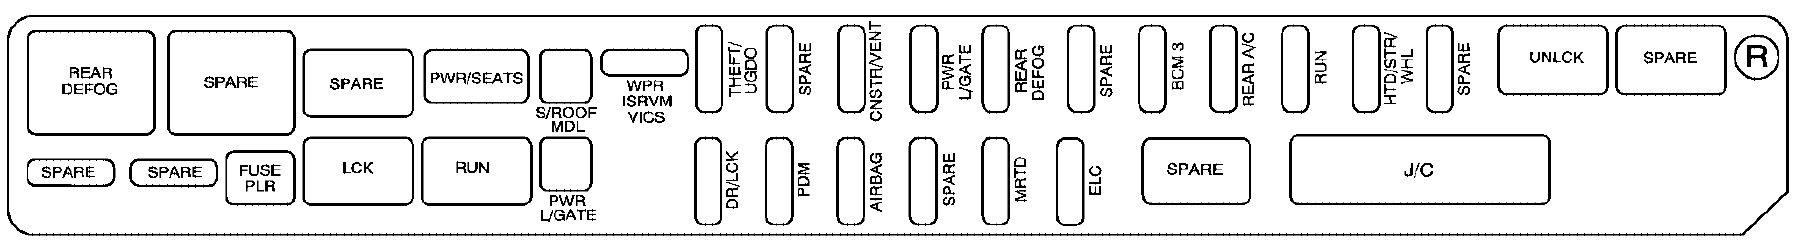 cadillac srx mk1 first generation 2009 fuse box diagram cadillac srx mk1 fuse box rear compartment right side